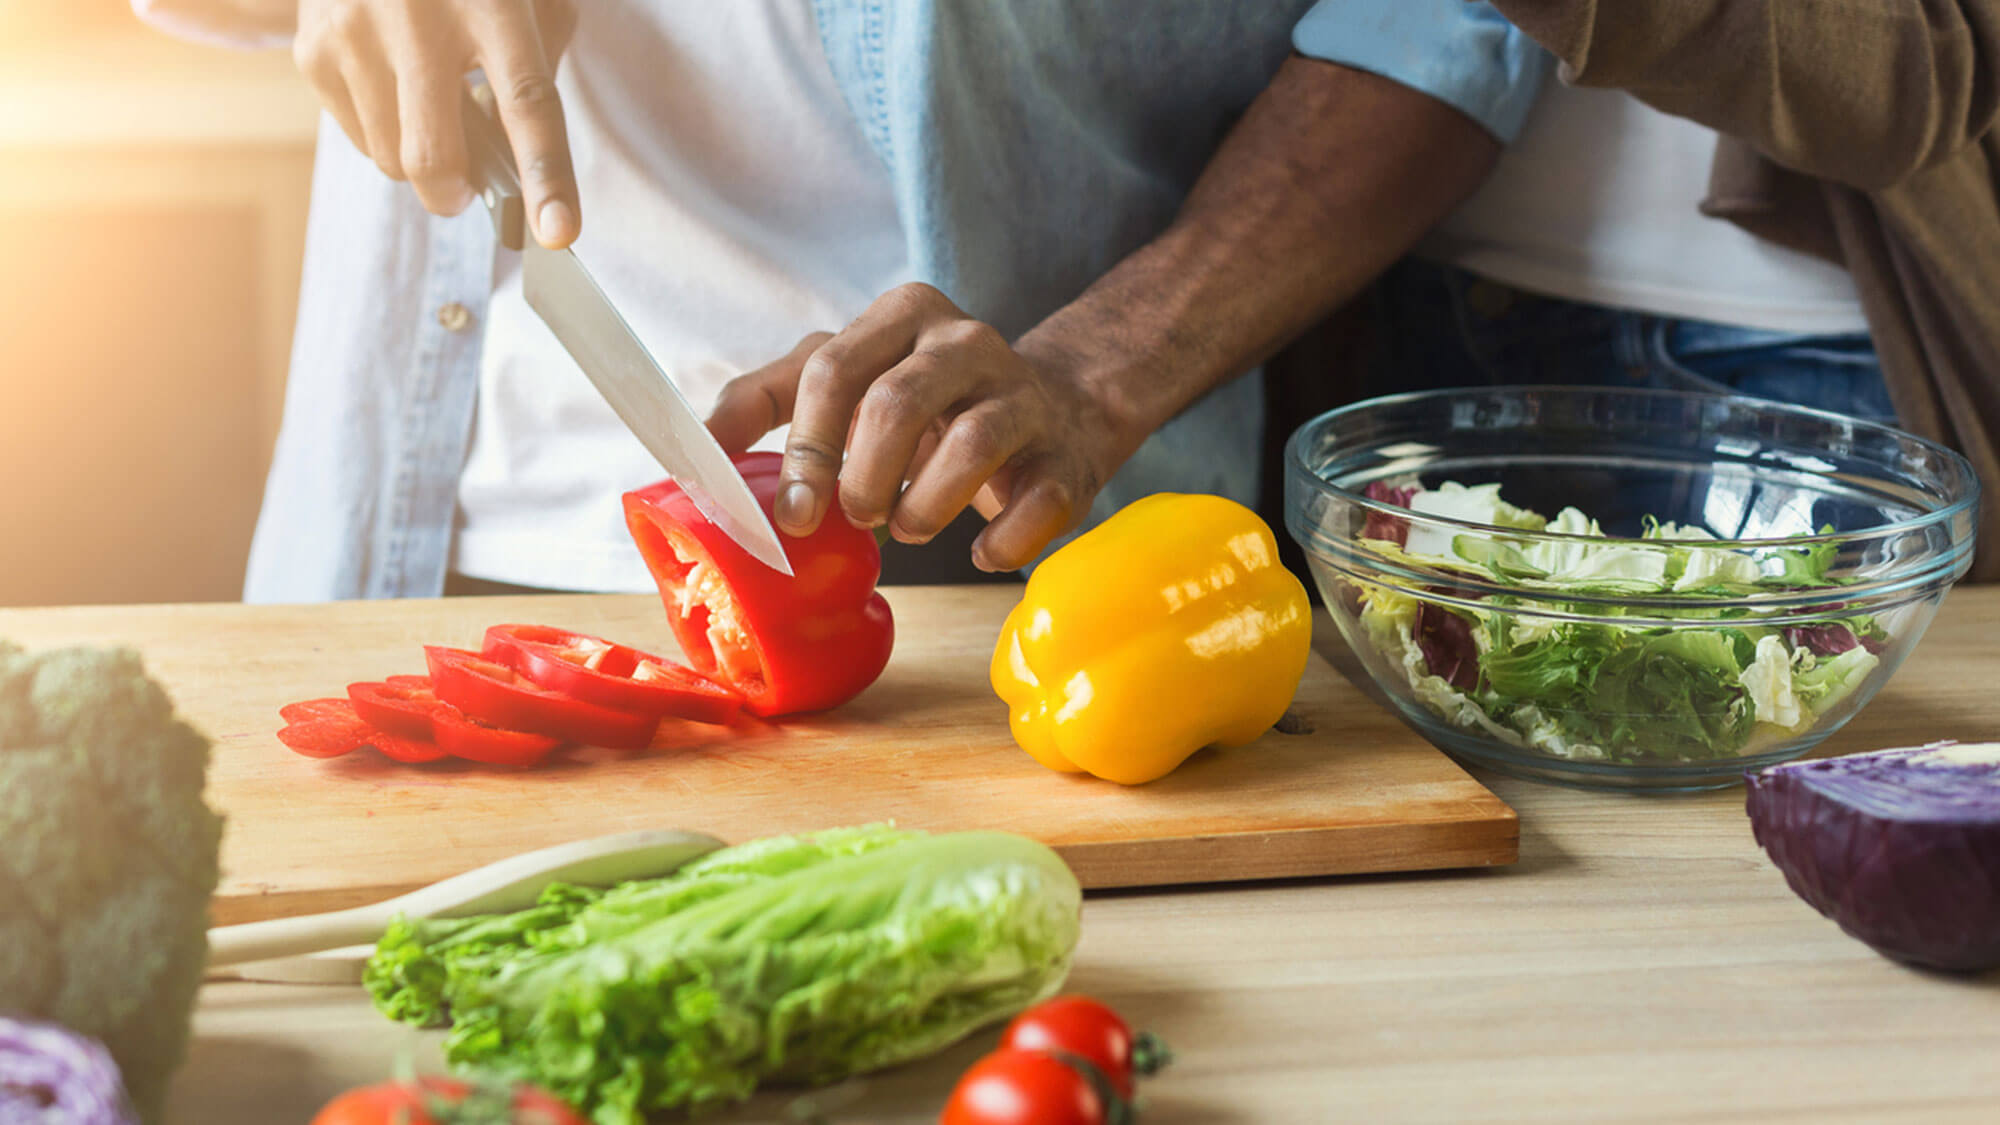 Get in the Habit of Meal Planning (and Prepping)